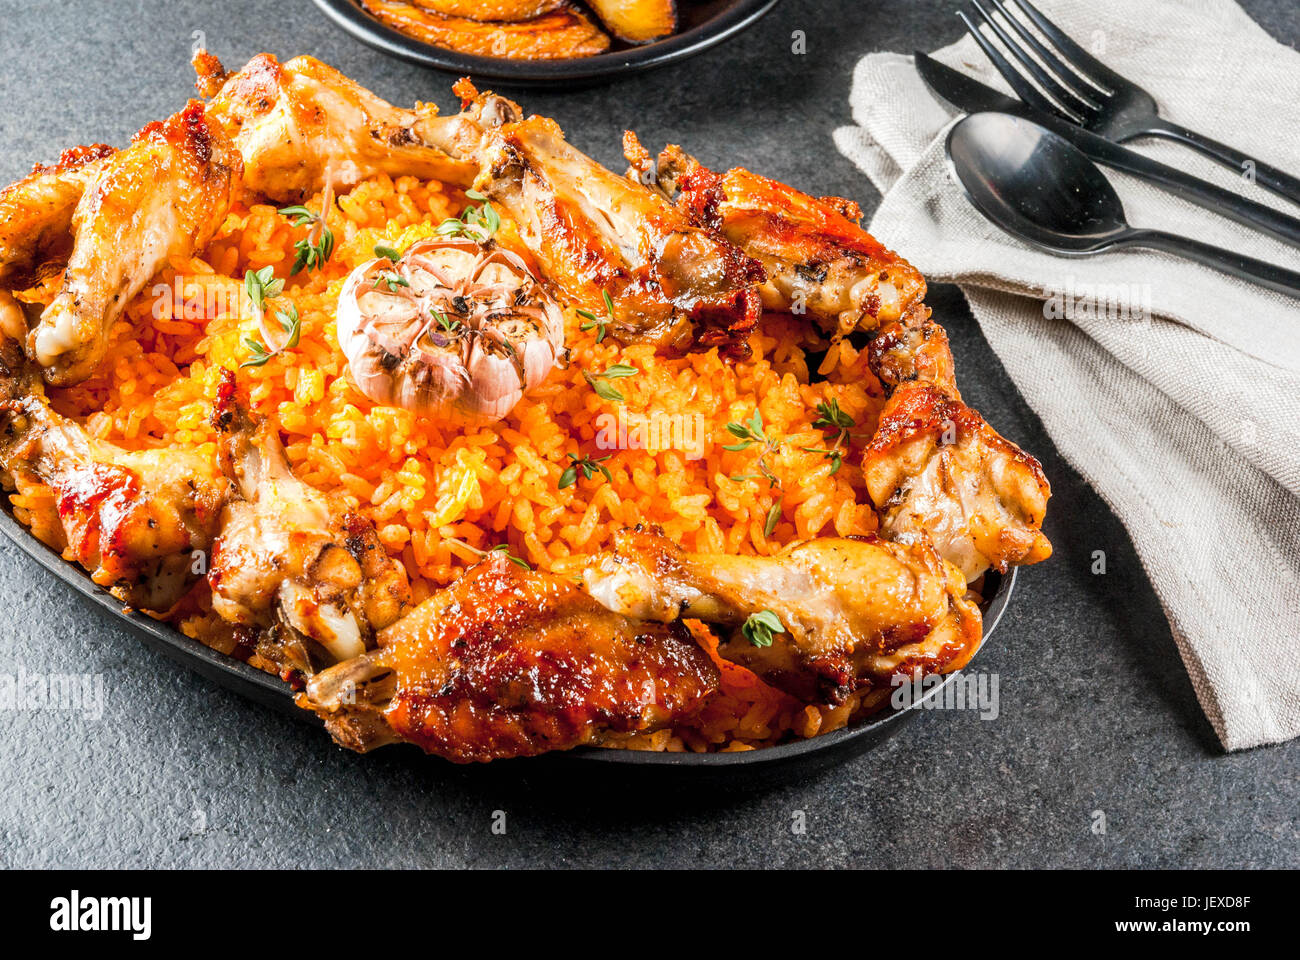 West African national cuisine. Jollof rice with grilled chicken wings and fried bananas plantains.On gray stone - Stock Image